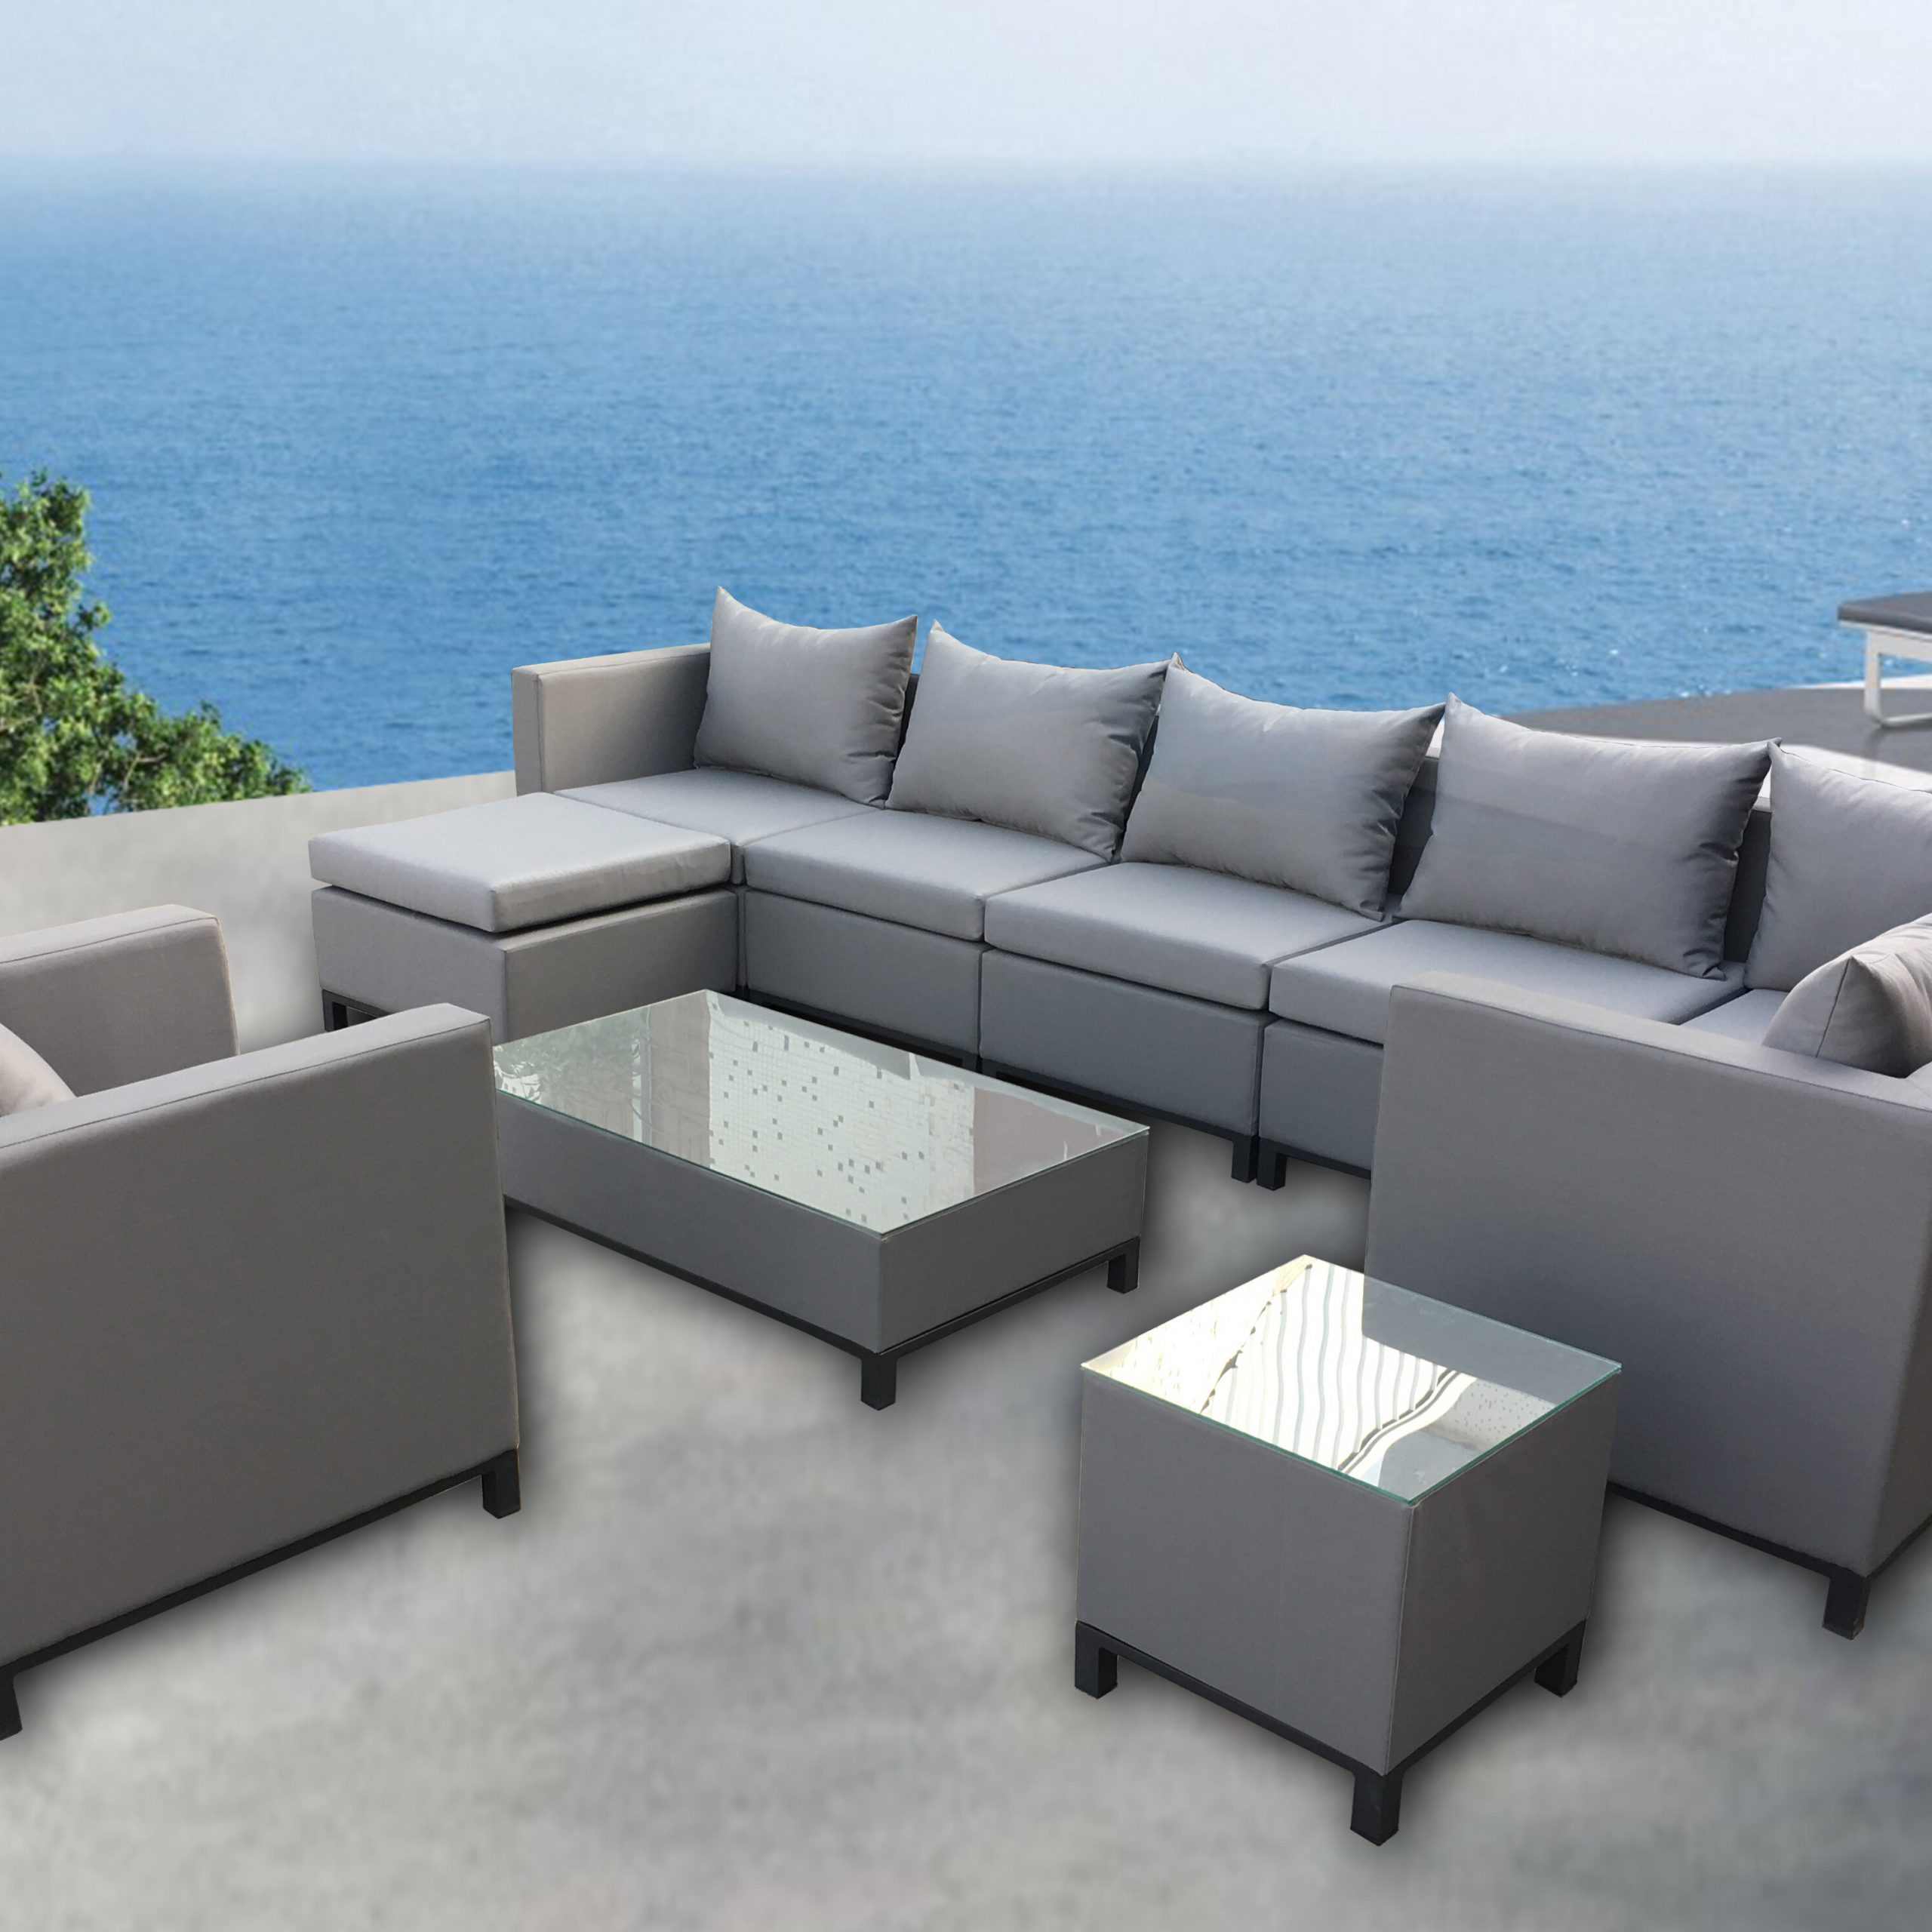 Honeycutt Patio Sofas With Cushions Pertaining To Latest Honeycutt 10 Piece Sectional Set With Cushions (View 8 of 25)